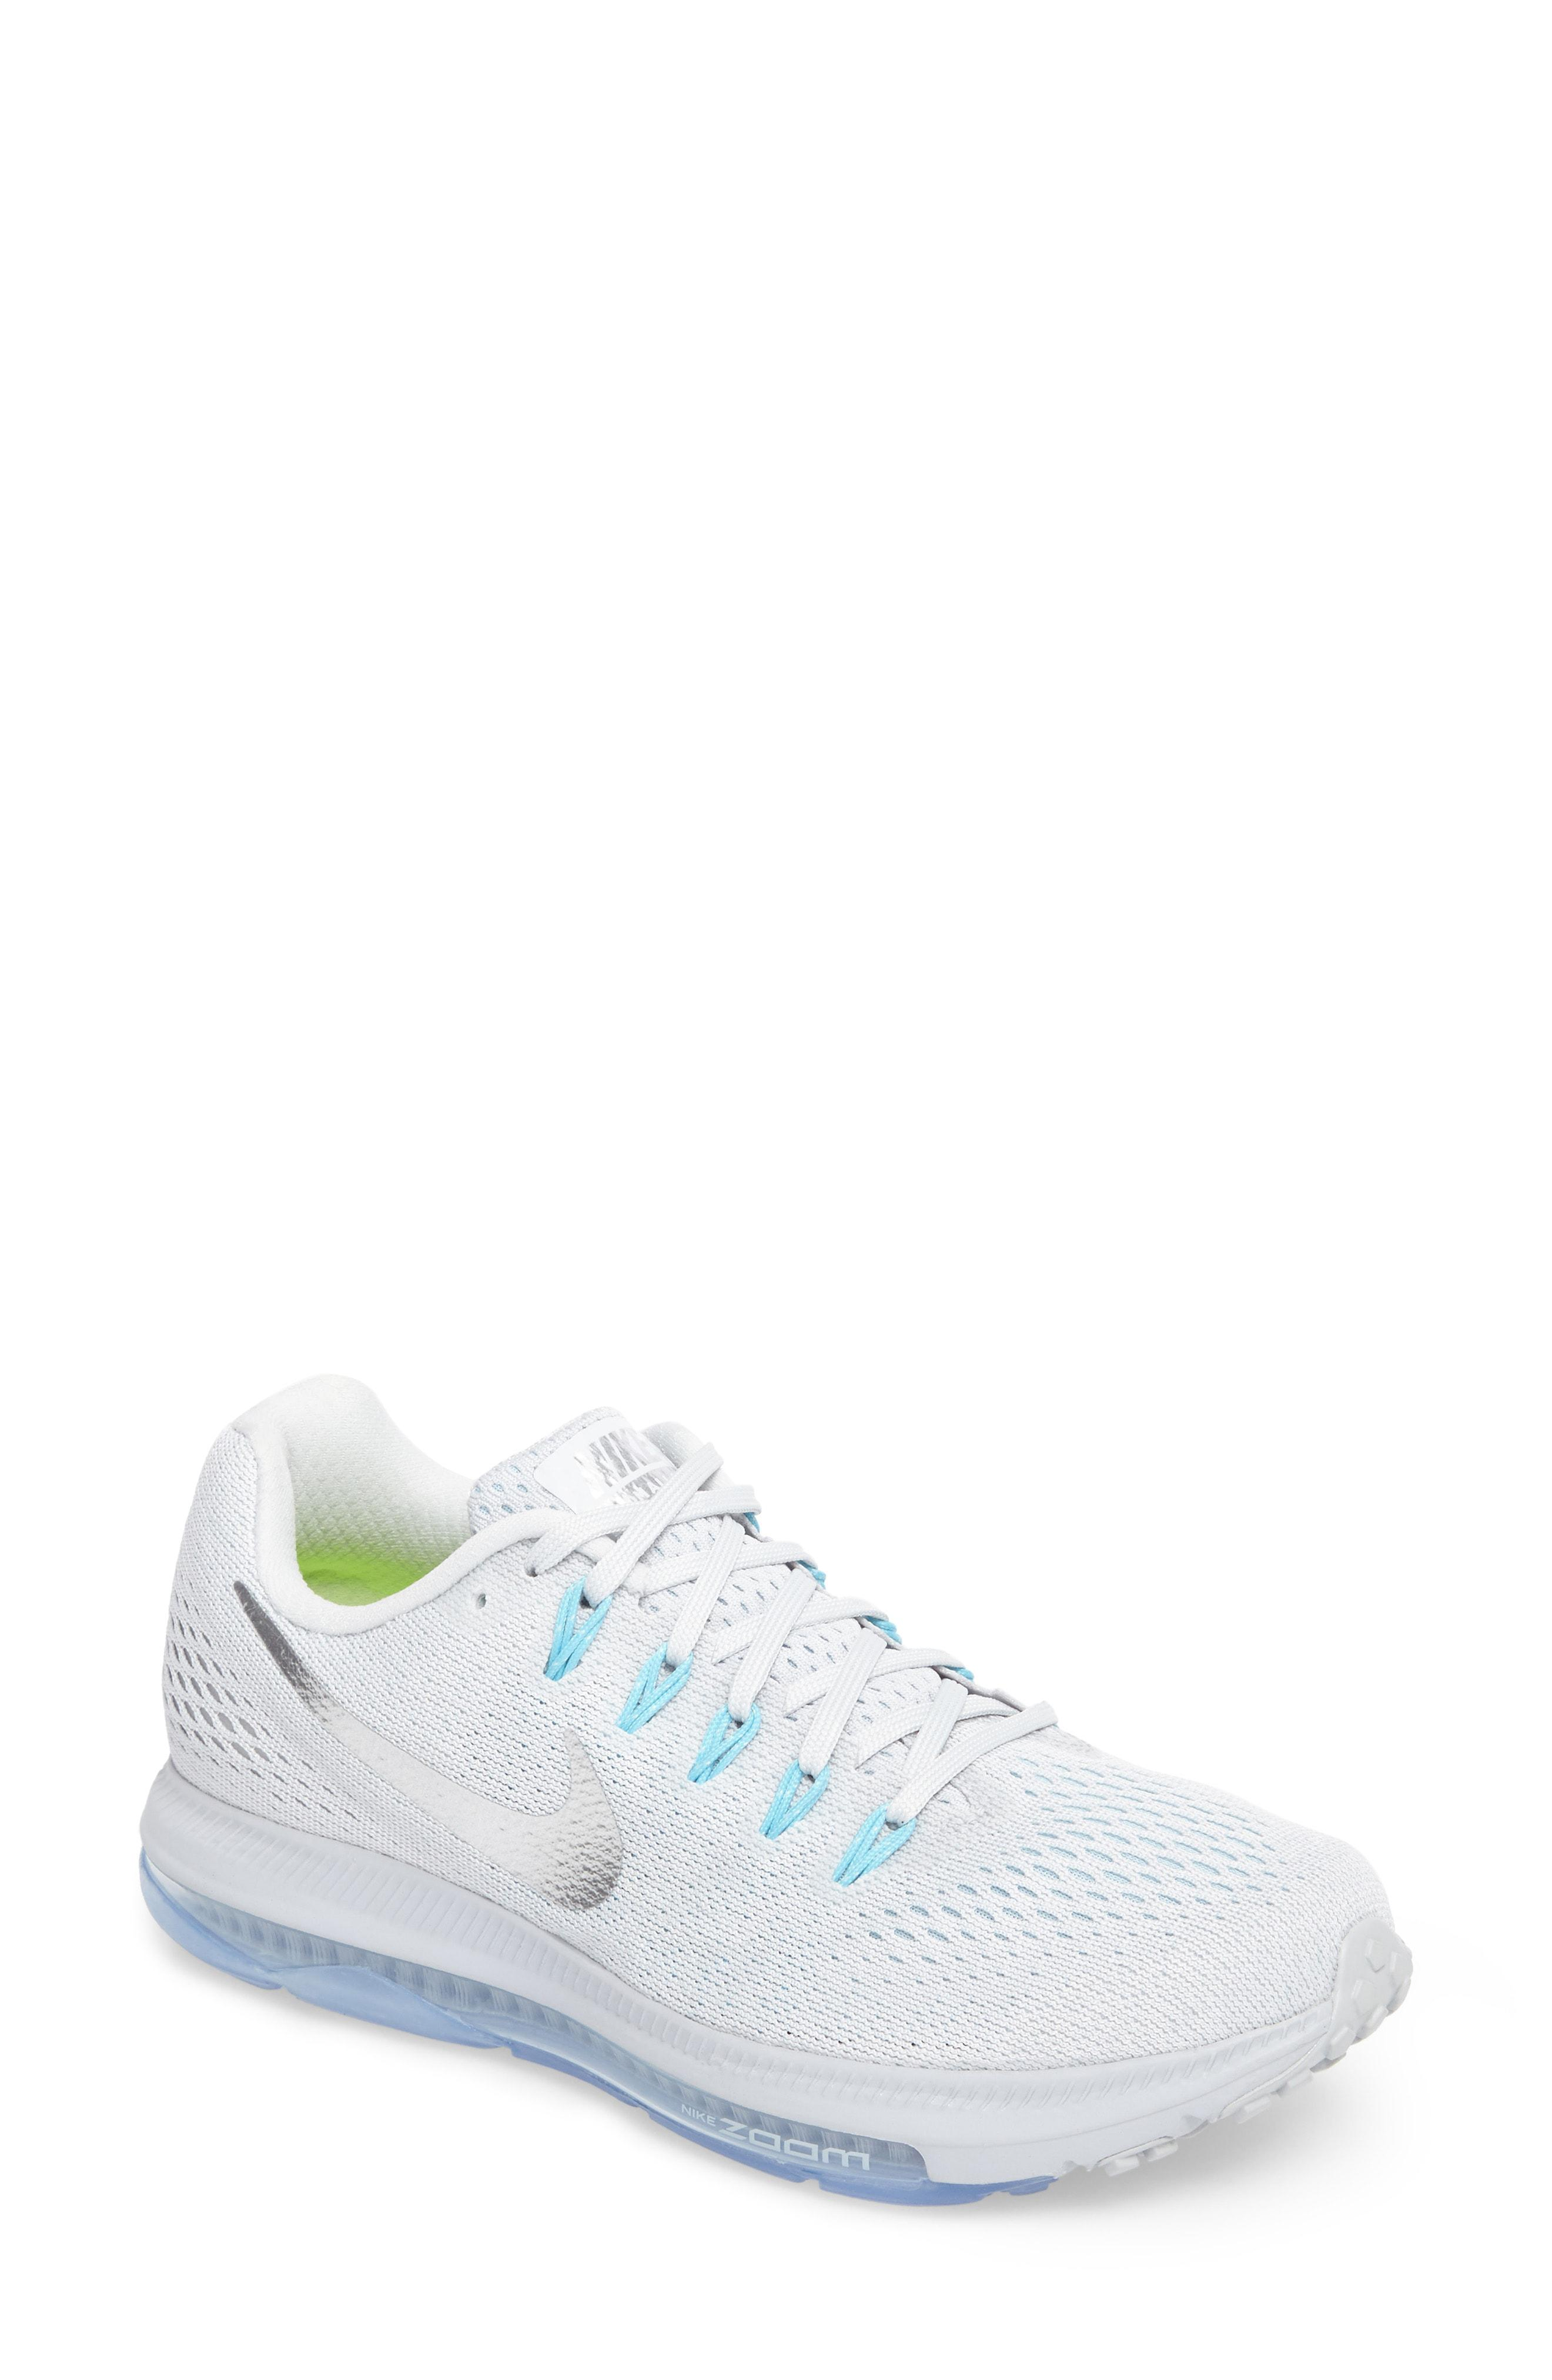 Lyst - Nike Air Zoom All Out Running Shoe in Blue e3187554fc